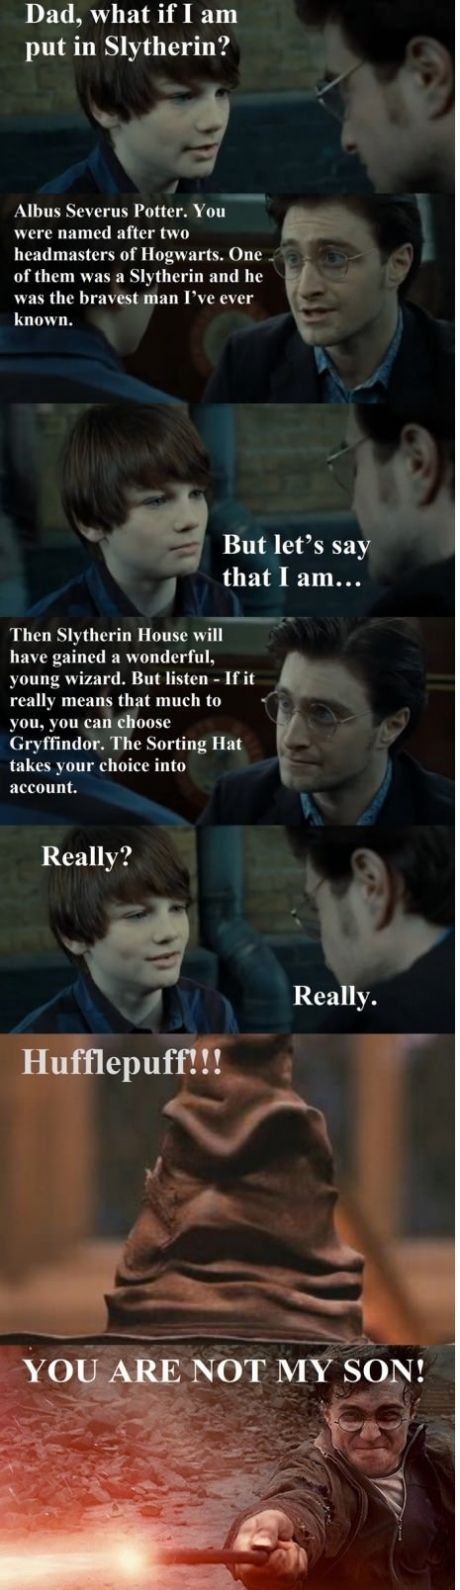 This is SO mean there is nothing wrong with hufflepuff! Neville was one of the bravest people i have read of in a book!